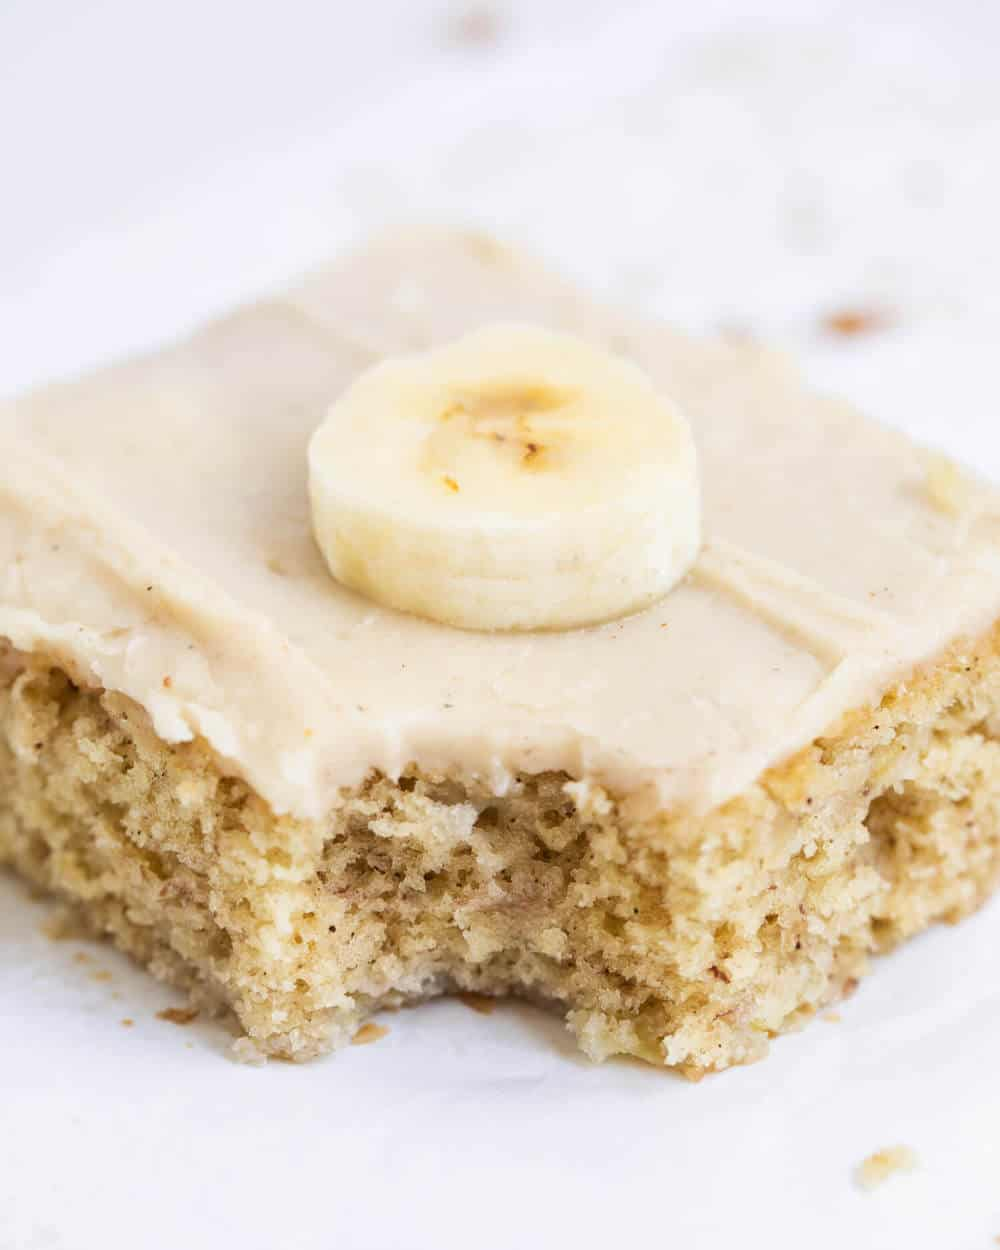 frosted banana bar with a bite taken out